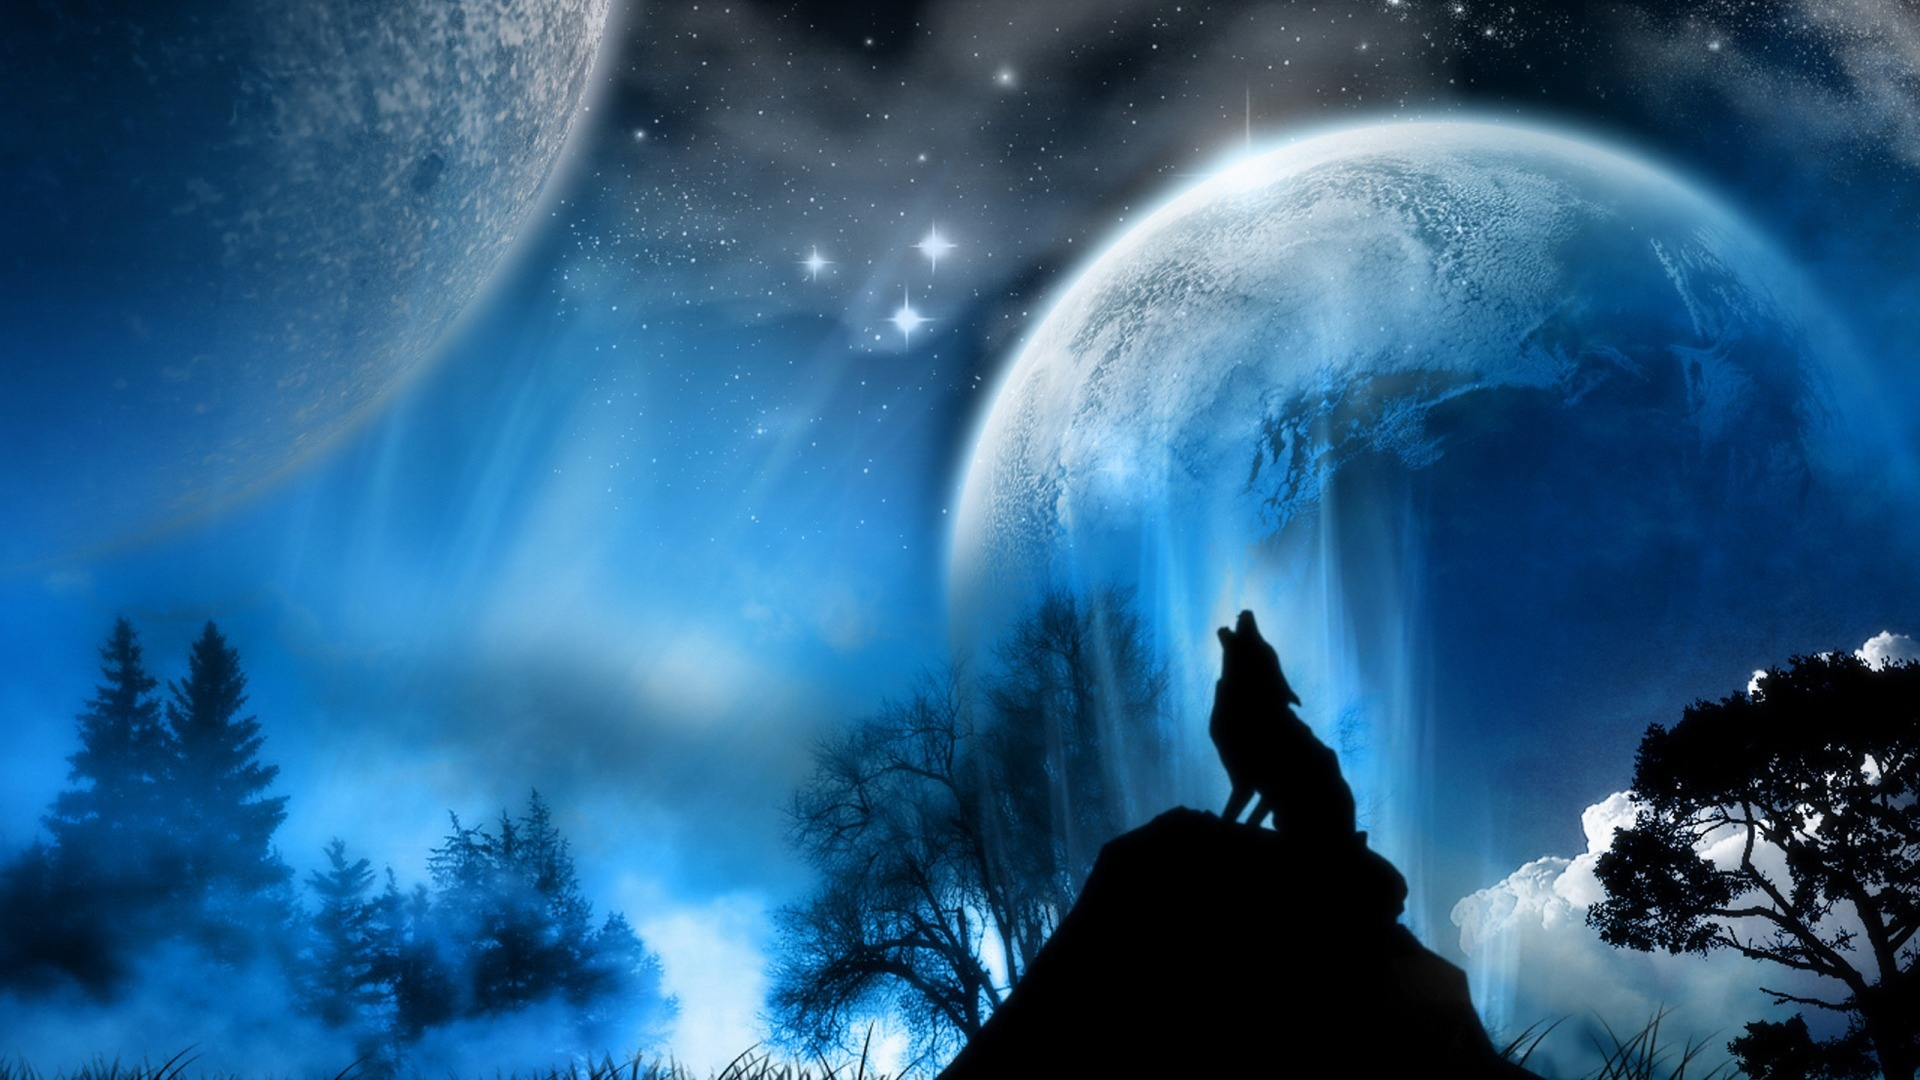 Desktop-best-wolf-hd-Wolf-Hd-Wolf-Desktop-Best-Wolf-Fo-wallpaper-wpc5804076